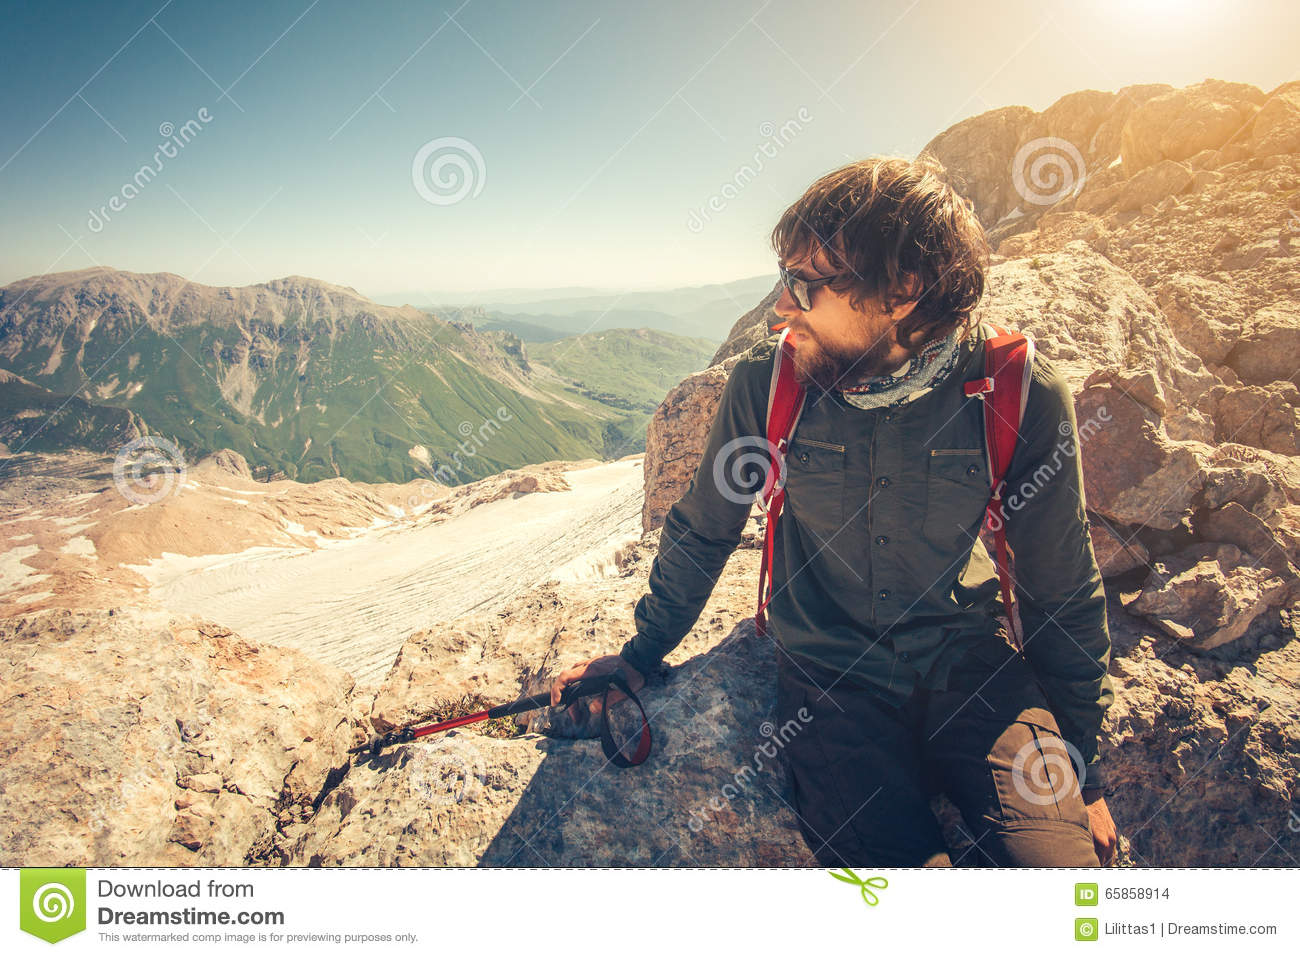 1cc9439d7473 Man Traveler bearded with backpack relaxing Travel Lifestyle concept  mountains on background Summer vacations activity outdoor